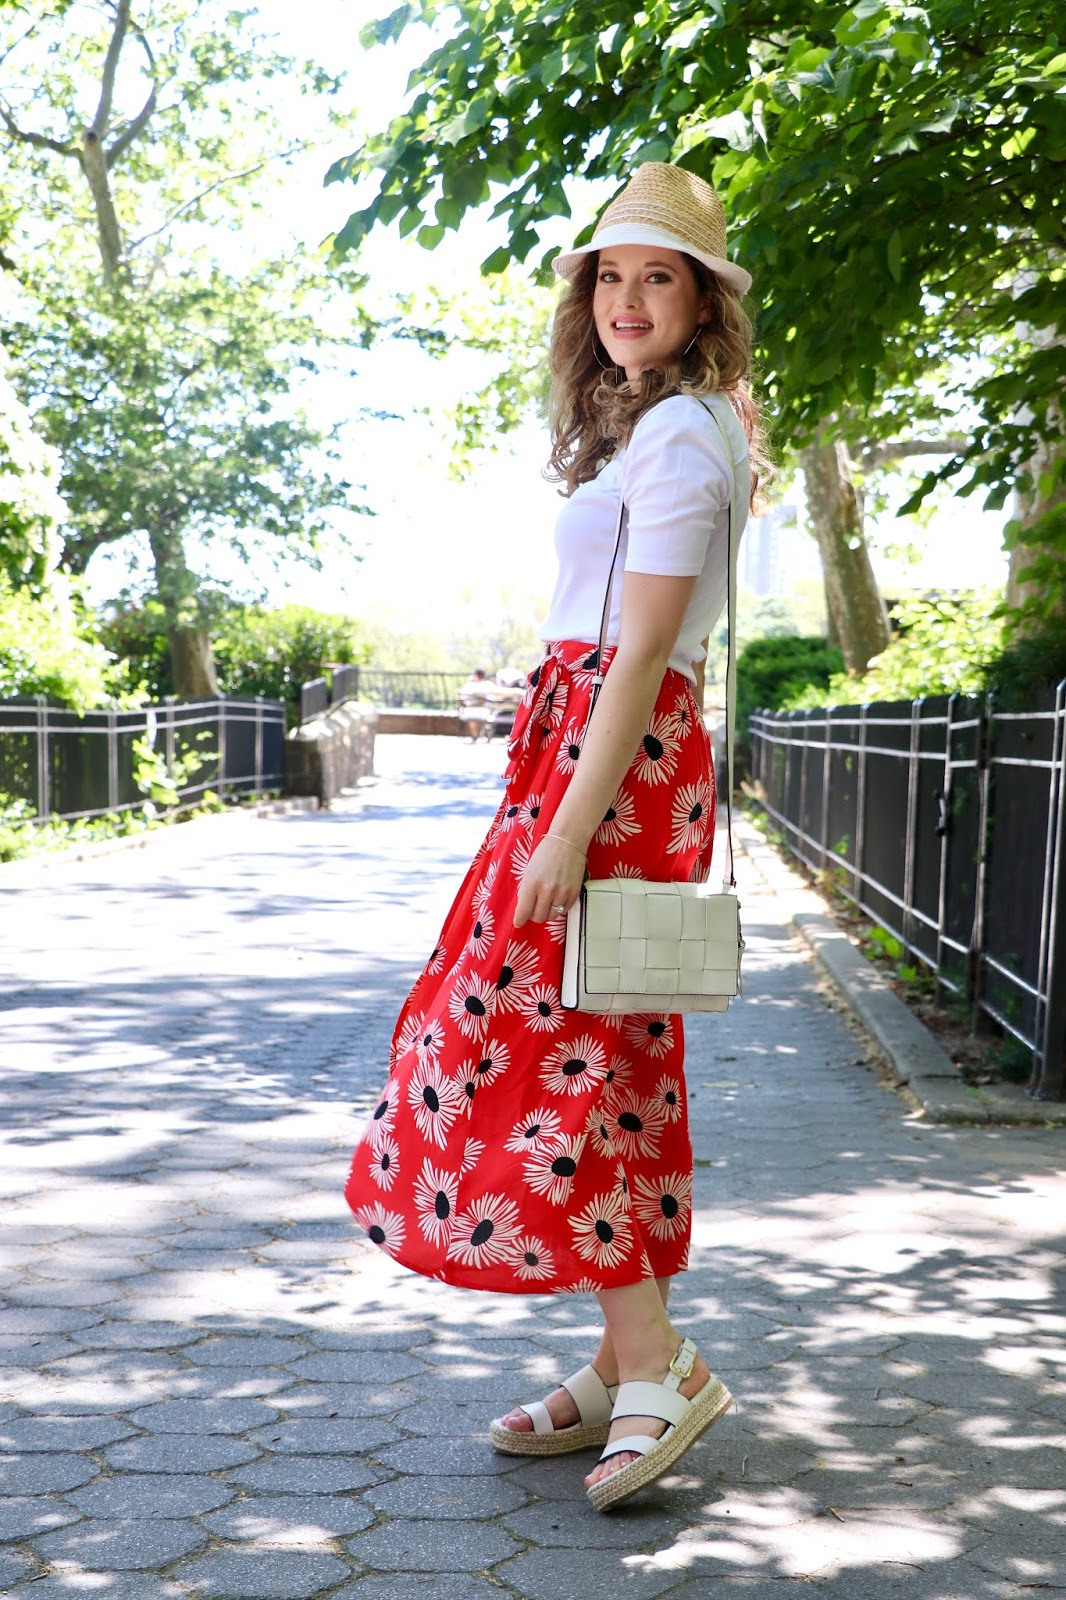 Nyc fashion blogger Kathleen Harper wearing a floral red midi skirt from Anthropologie.